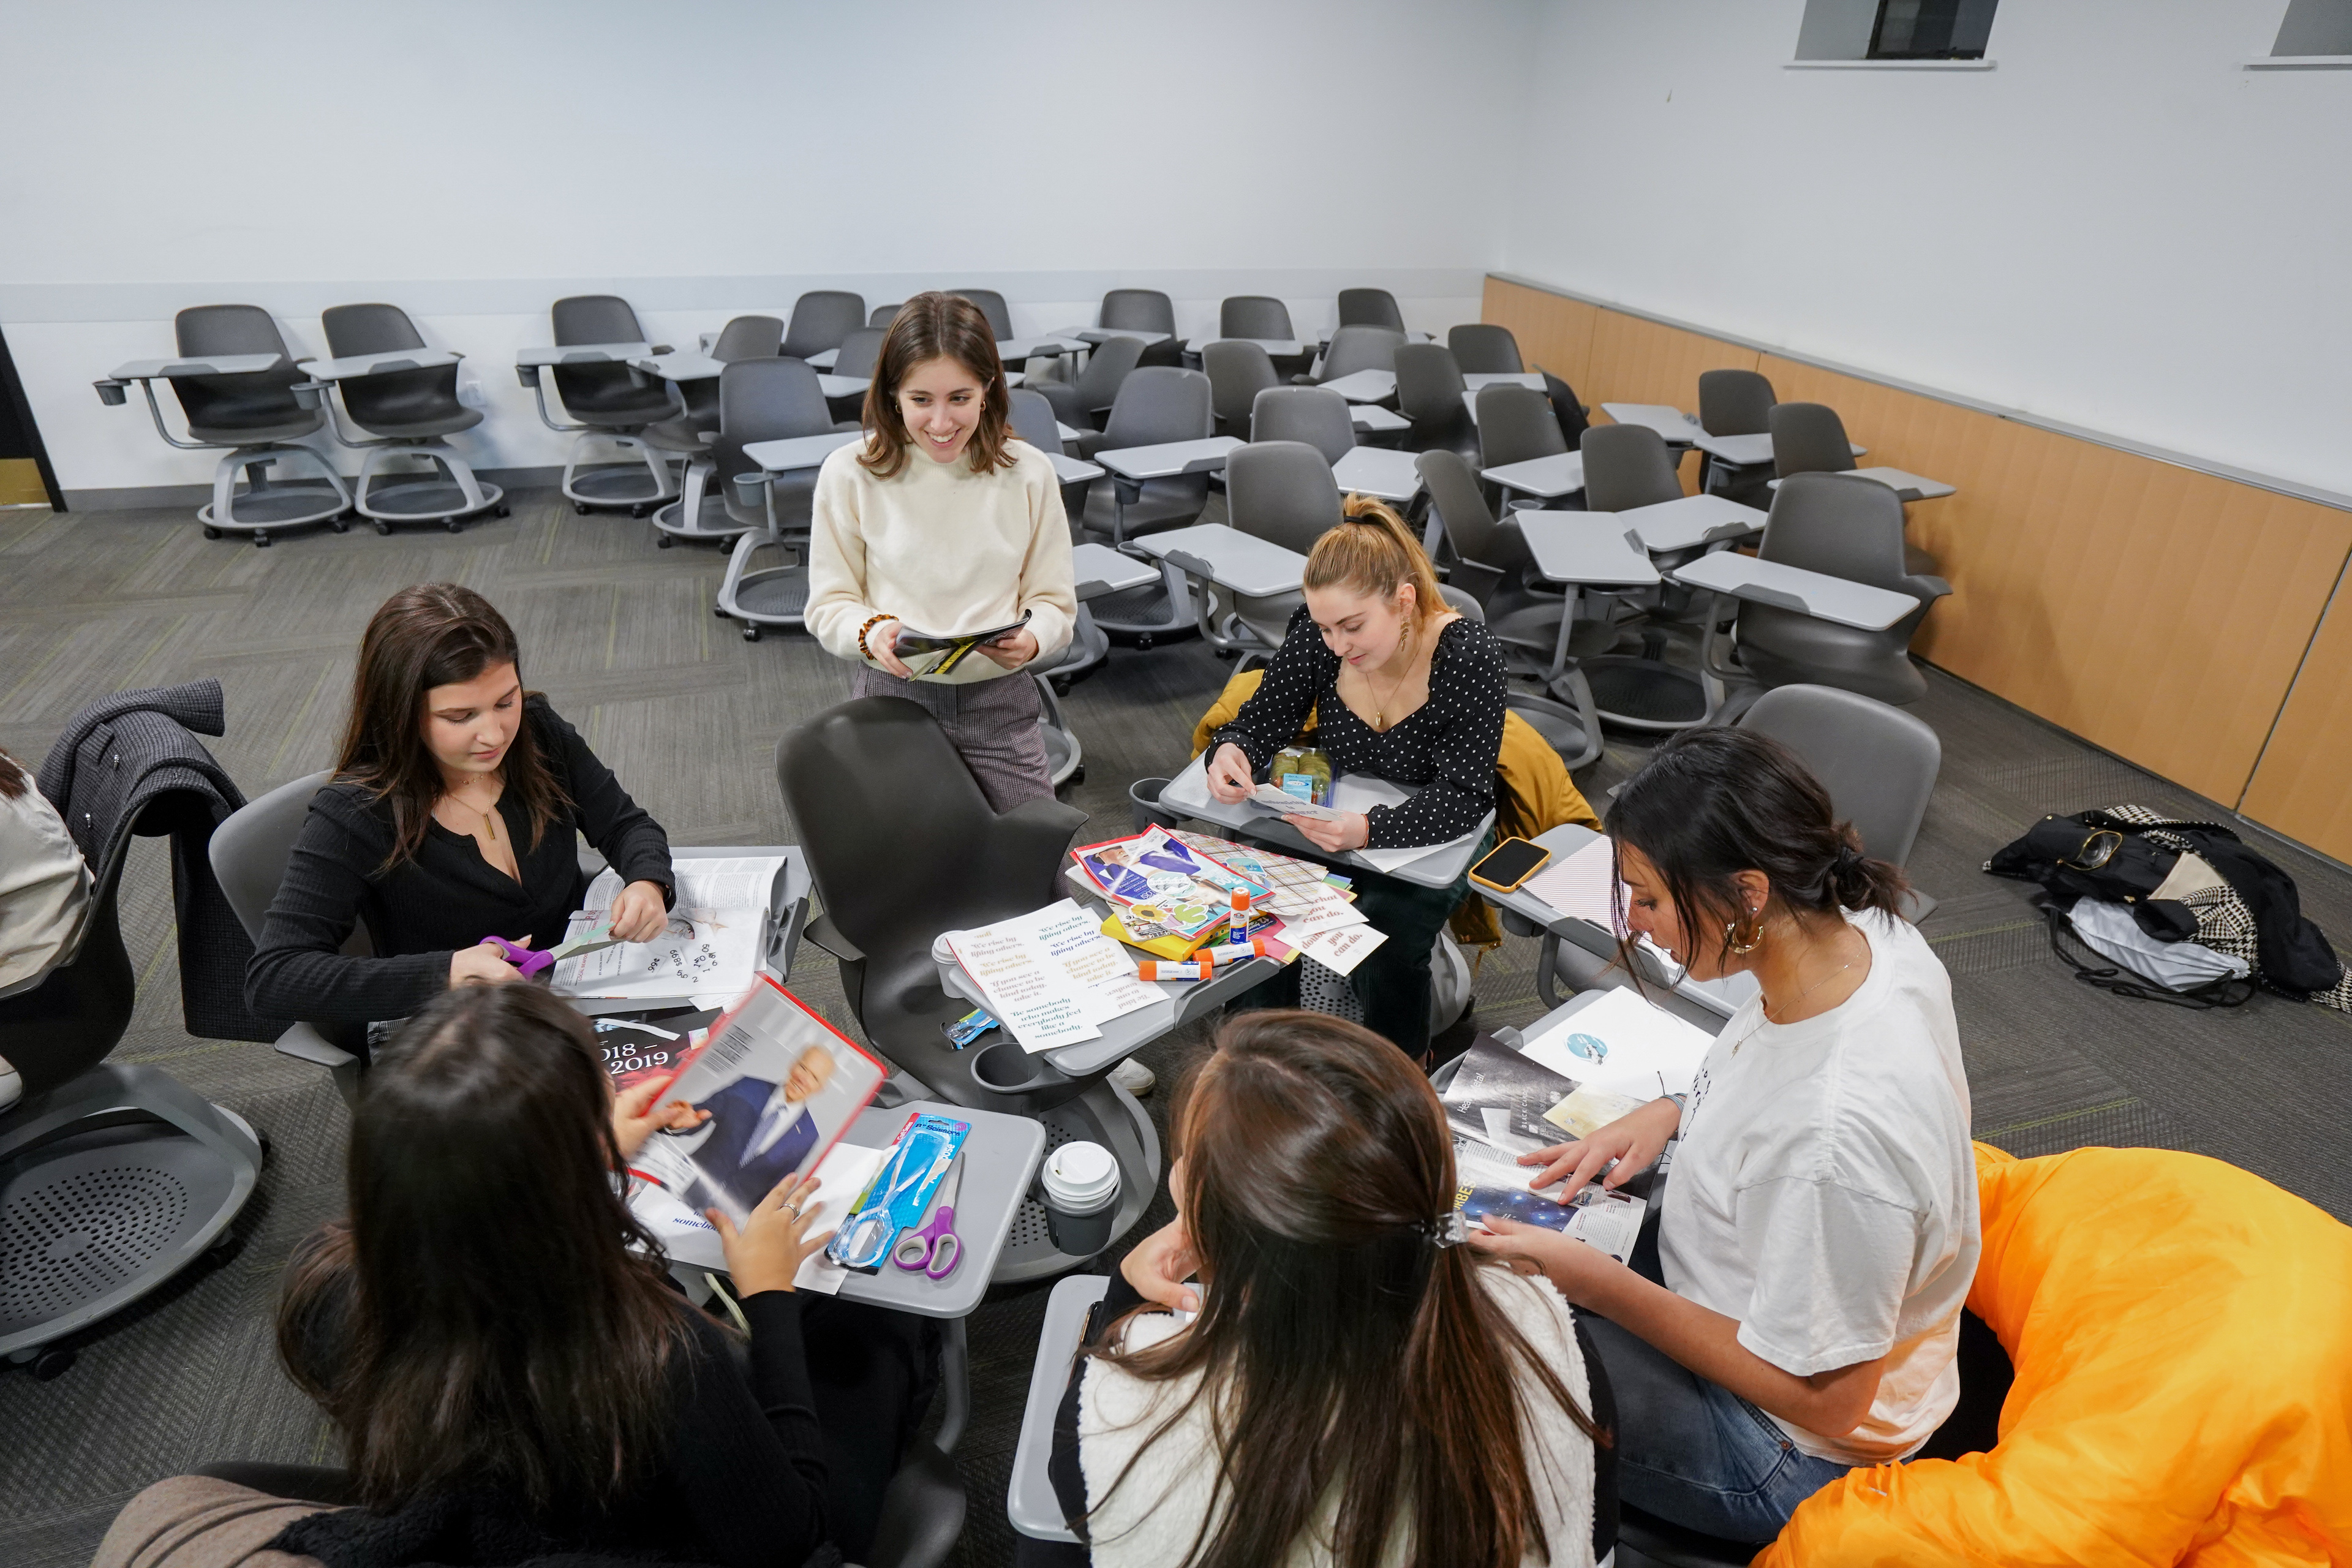 Six women sitting together in a circle and making vision boards.